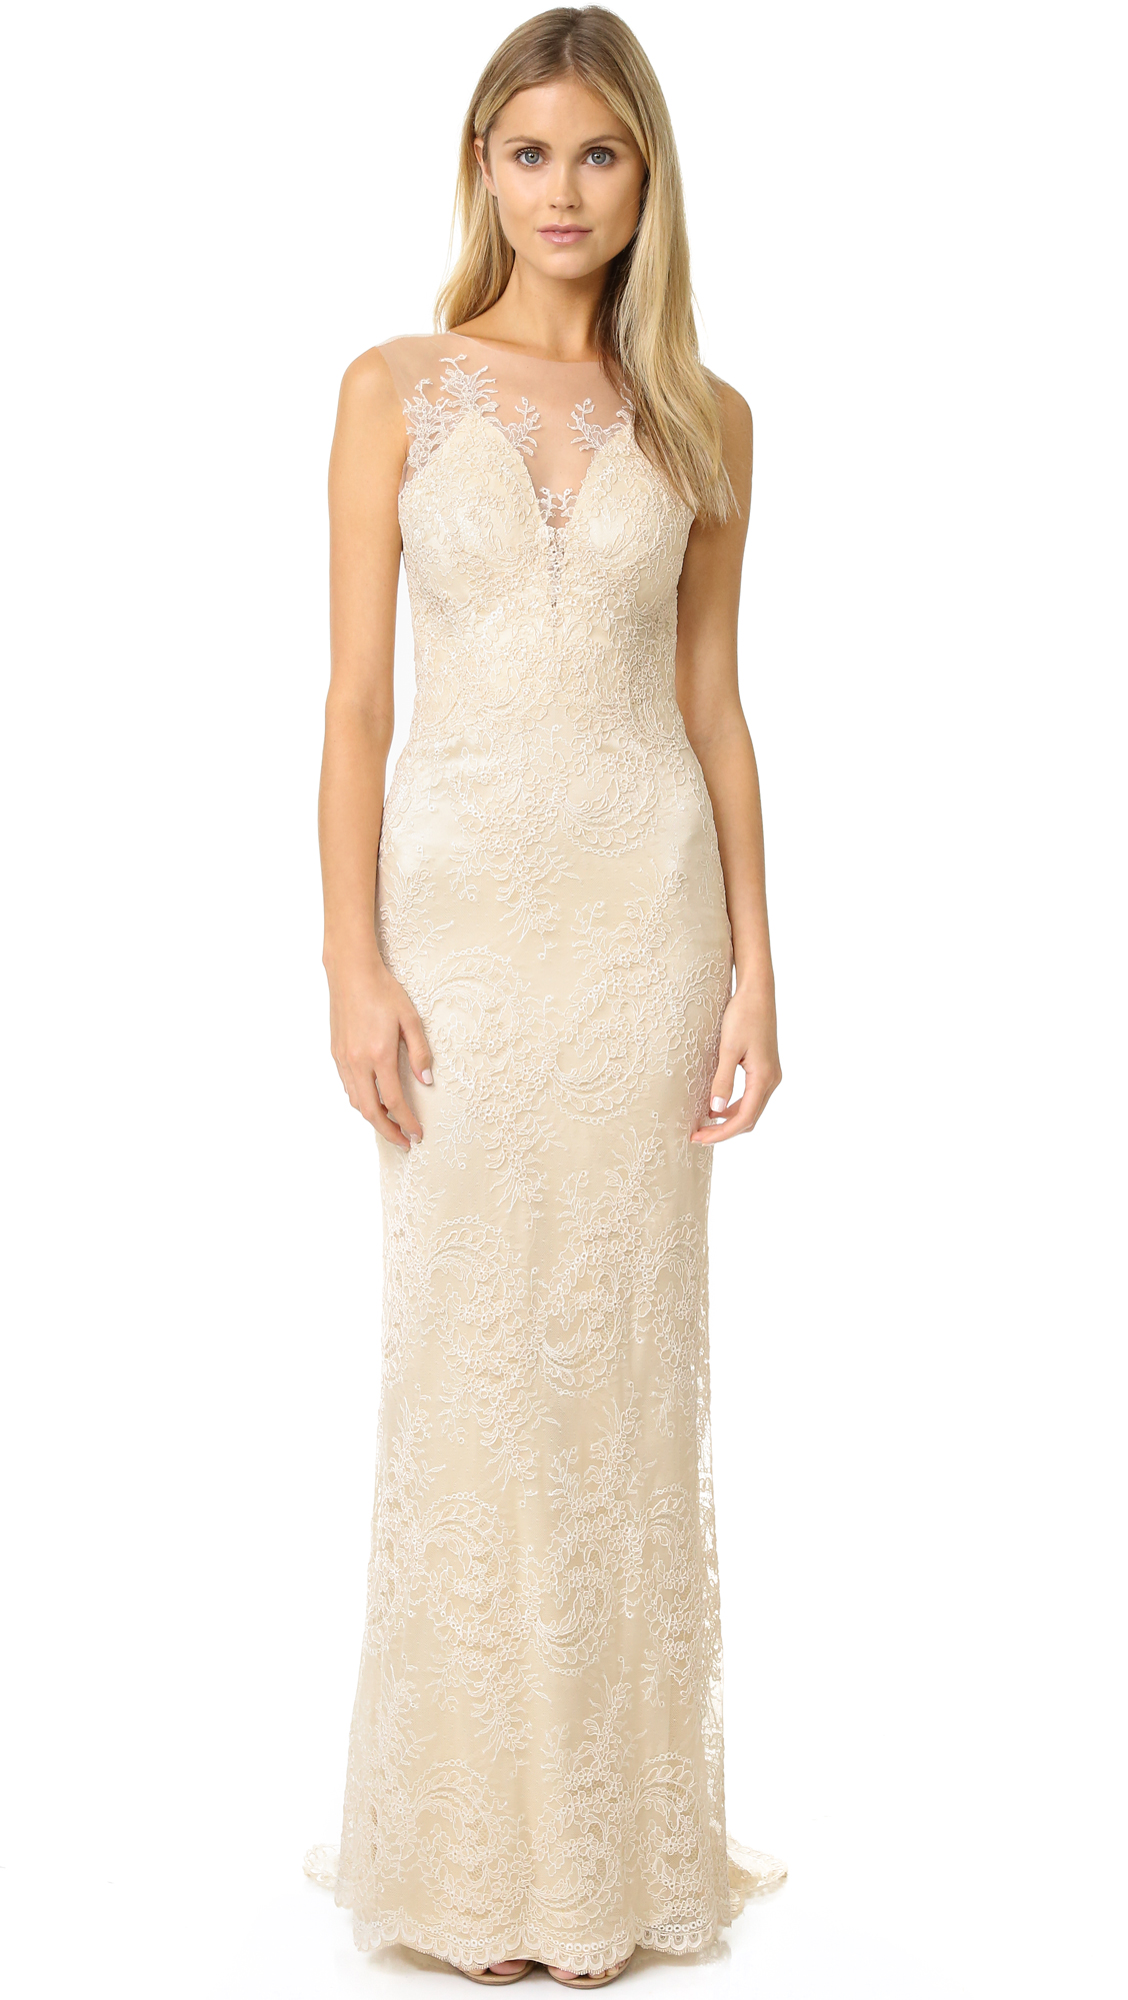 Catherine Deane Yasmin Dress - Bridal Cream